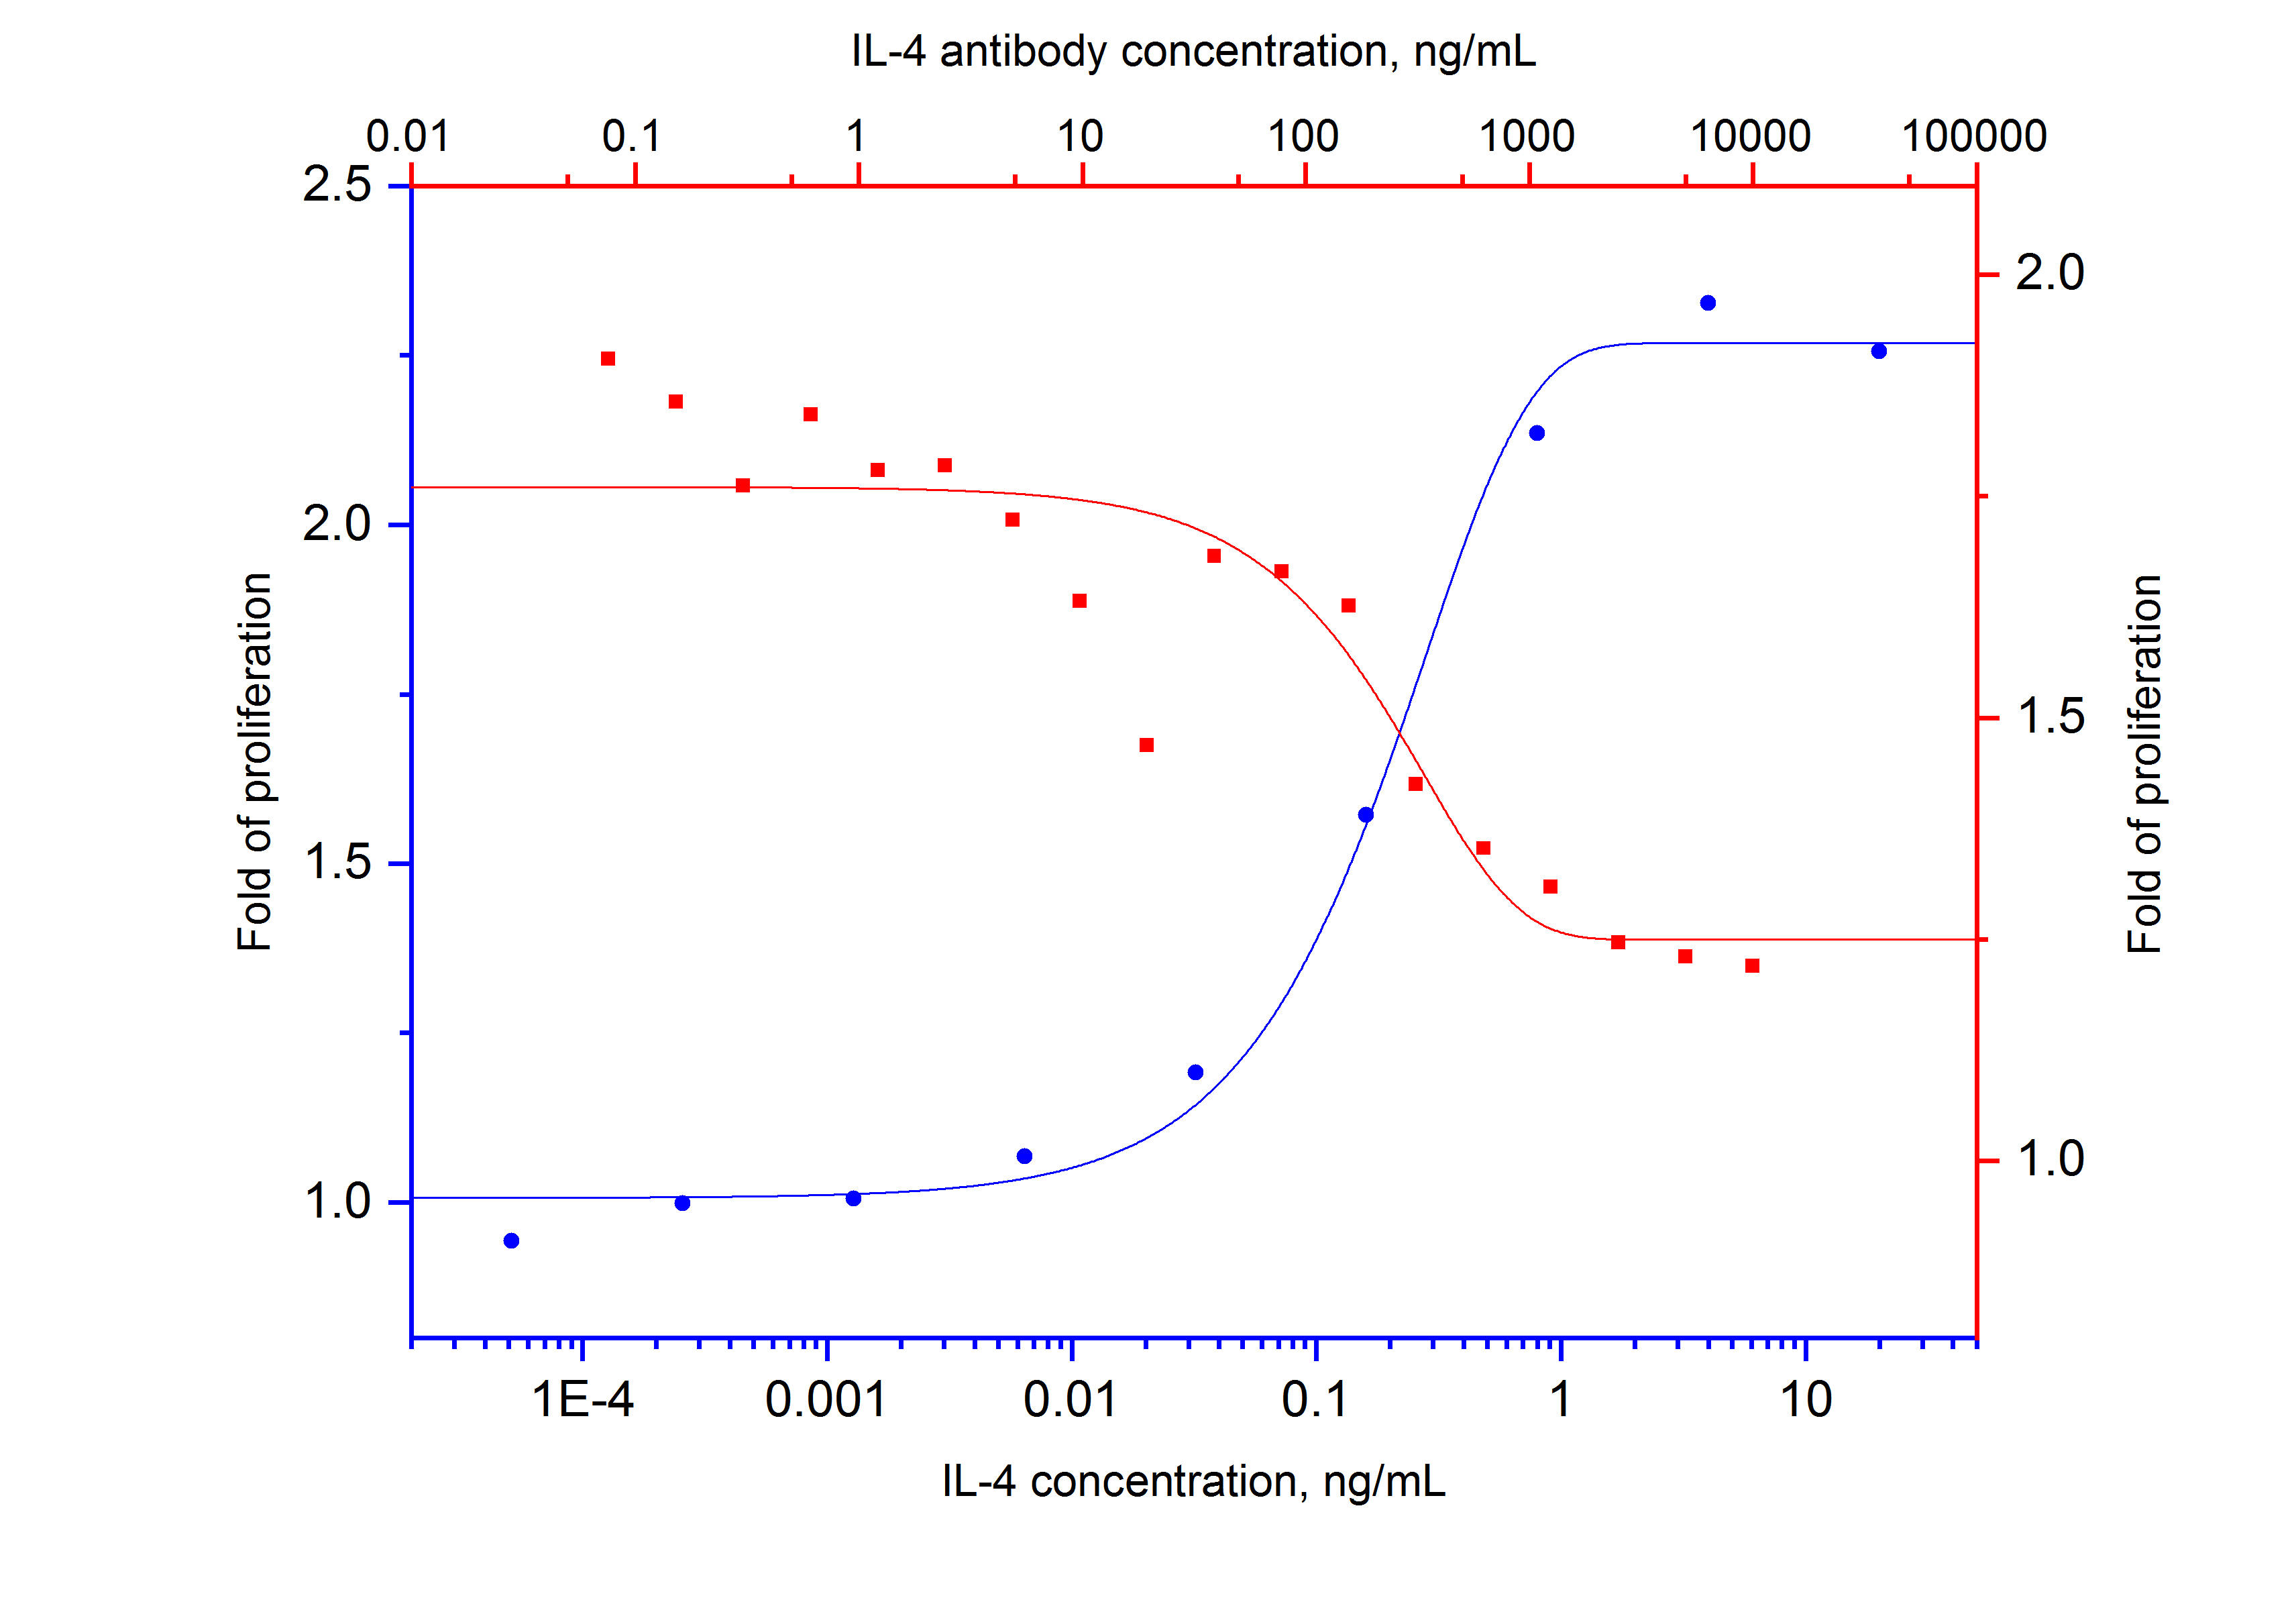 Recombinant human IL-4 (Cat.NO. HZ-1004) stimulates proliferation of TF-1 cell line (human erythroleukemic cell line) in a dose-dependent manner (blue curve, refer to bottom X-left Y).  The activity of human IL-4 (0.5 ng/mL HZ-1004) is neutralized by mouse anti-human IL-4 monoclonal antibody 69005-1-Ig at serial dose (red curve, refer to top X-right Y). The ND50 is typically 200-500 ng/mL.